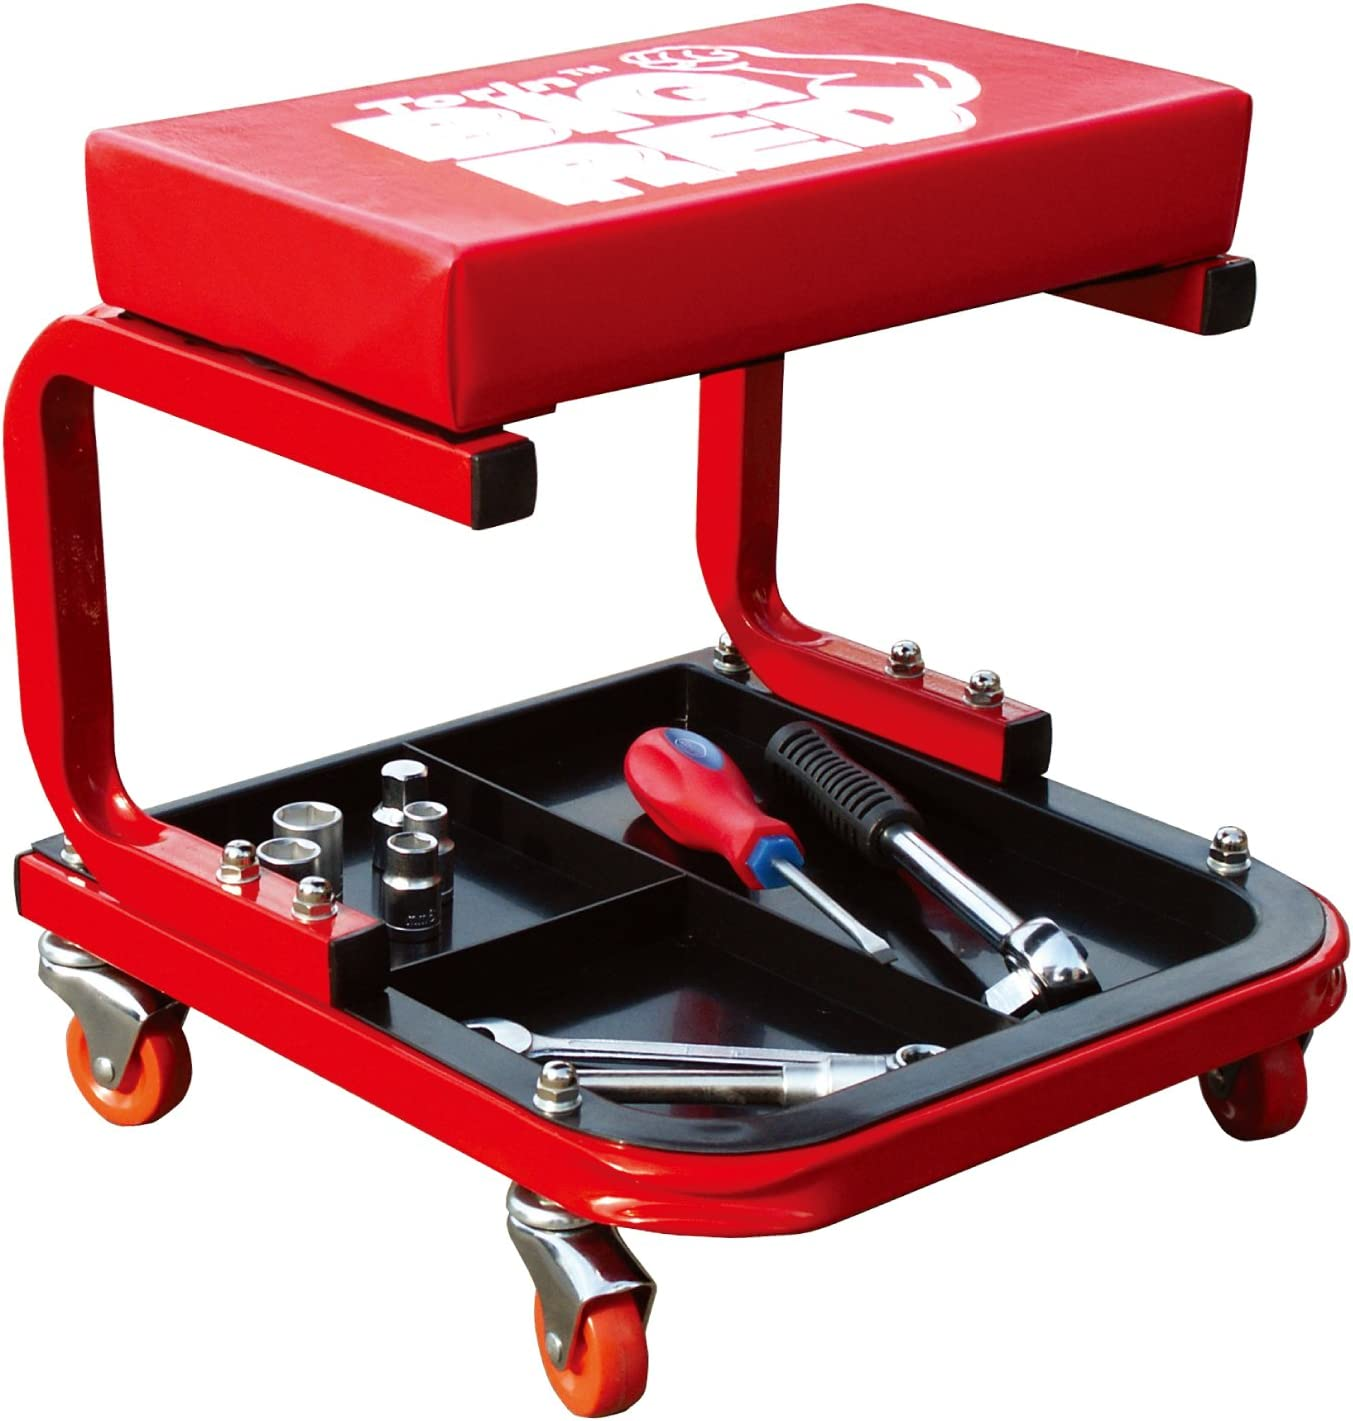 Torin TR6300 Red Rolling Creeper Garage/Shop Seat: Padded Mechanic Stool with Tool Tray: Automotive